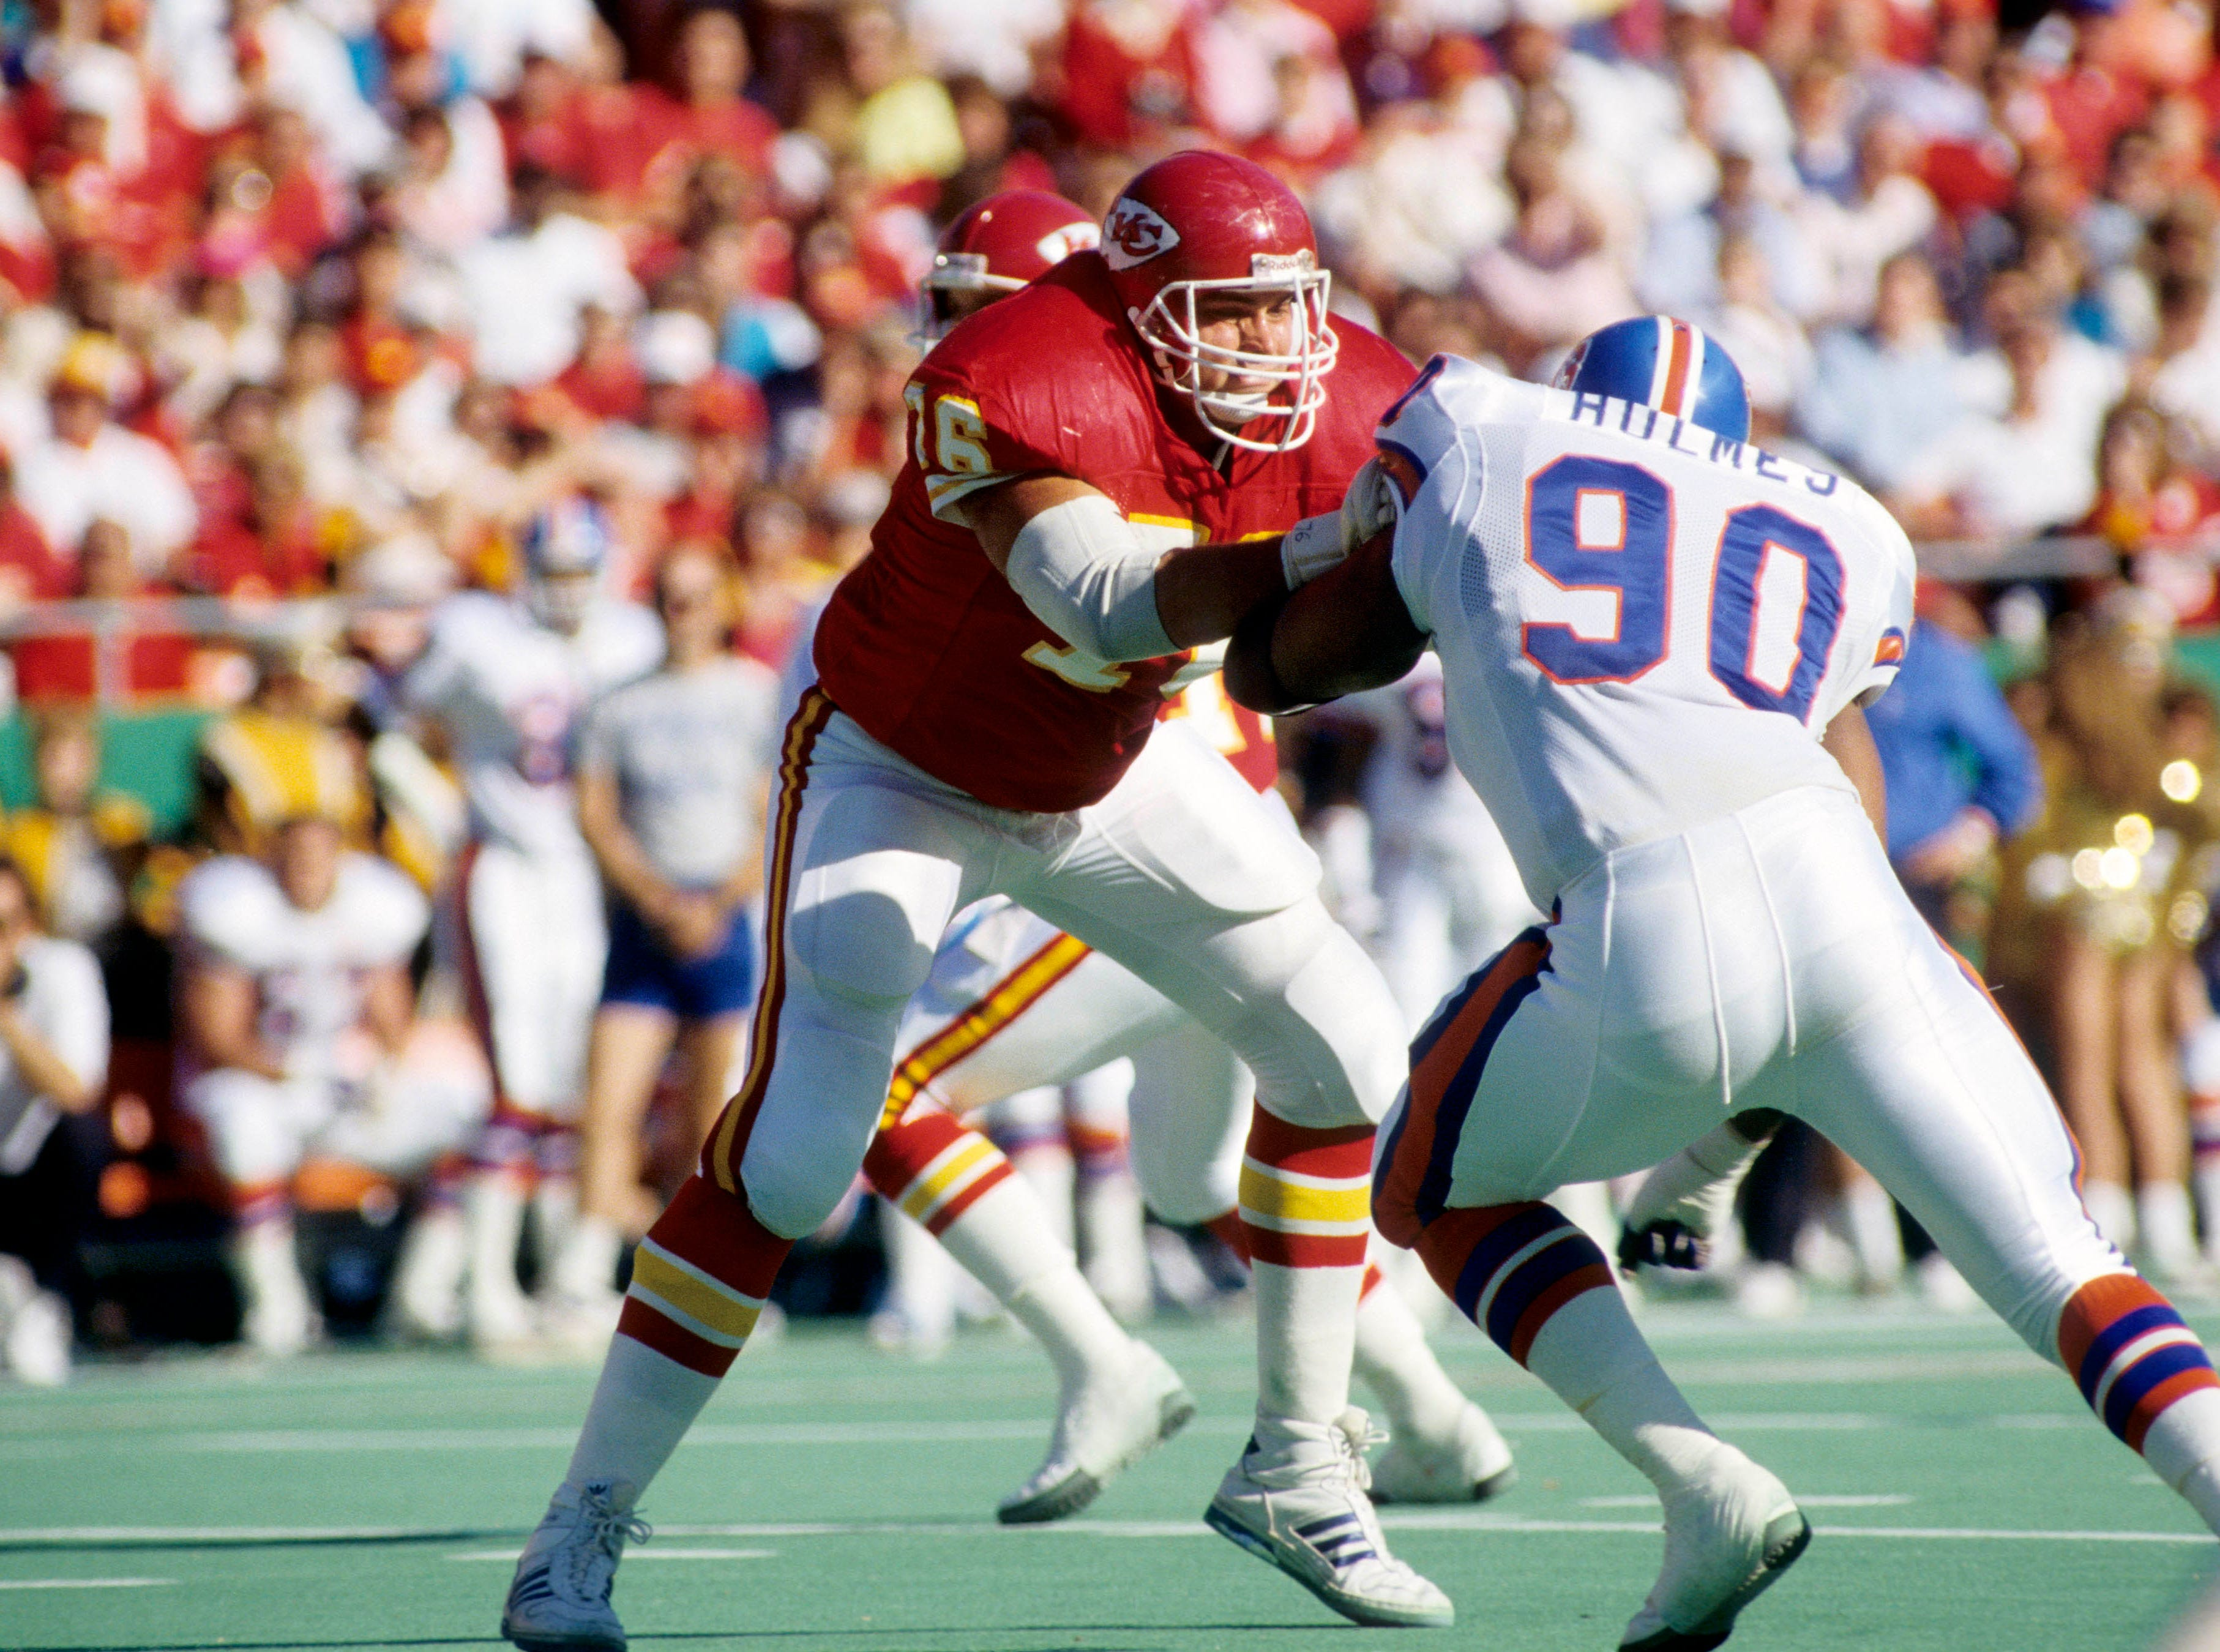 Kansas City Chiefs tackle John Alt (76) blocks Denver Broncos defensive end Ron Holmes (90) at Arrowhead Stadium in 1989. Alt, a former Iowa Hawkeye, was taken with the 21st pick of the first round in the 1984 NFL Draft.